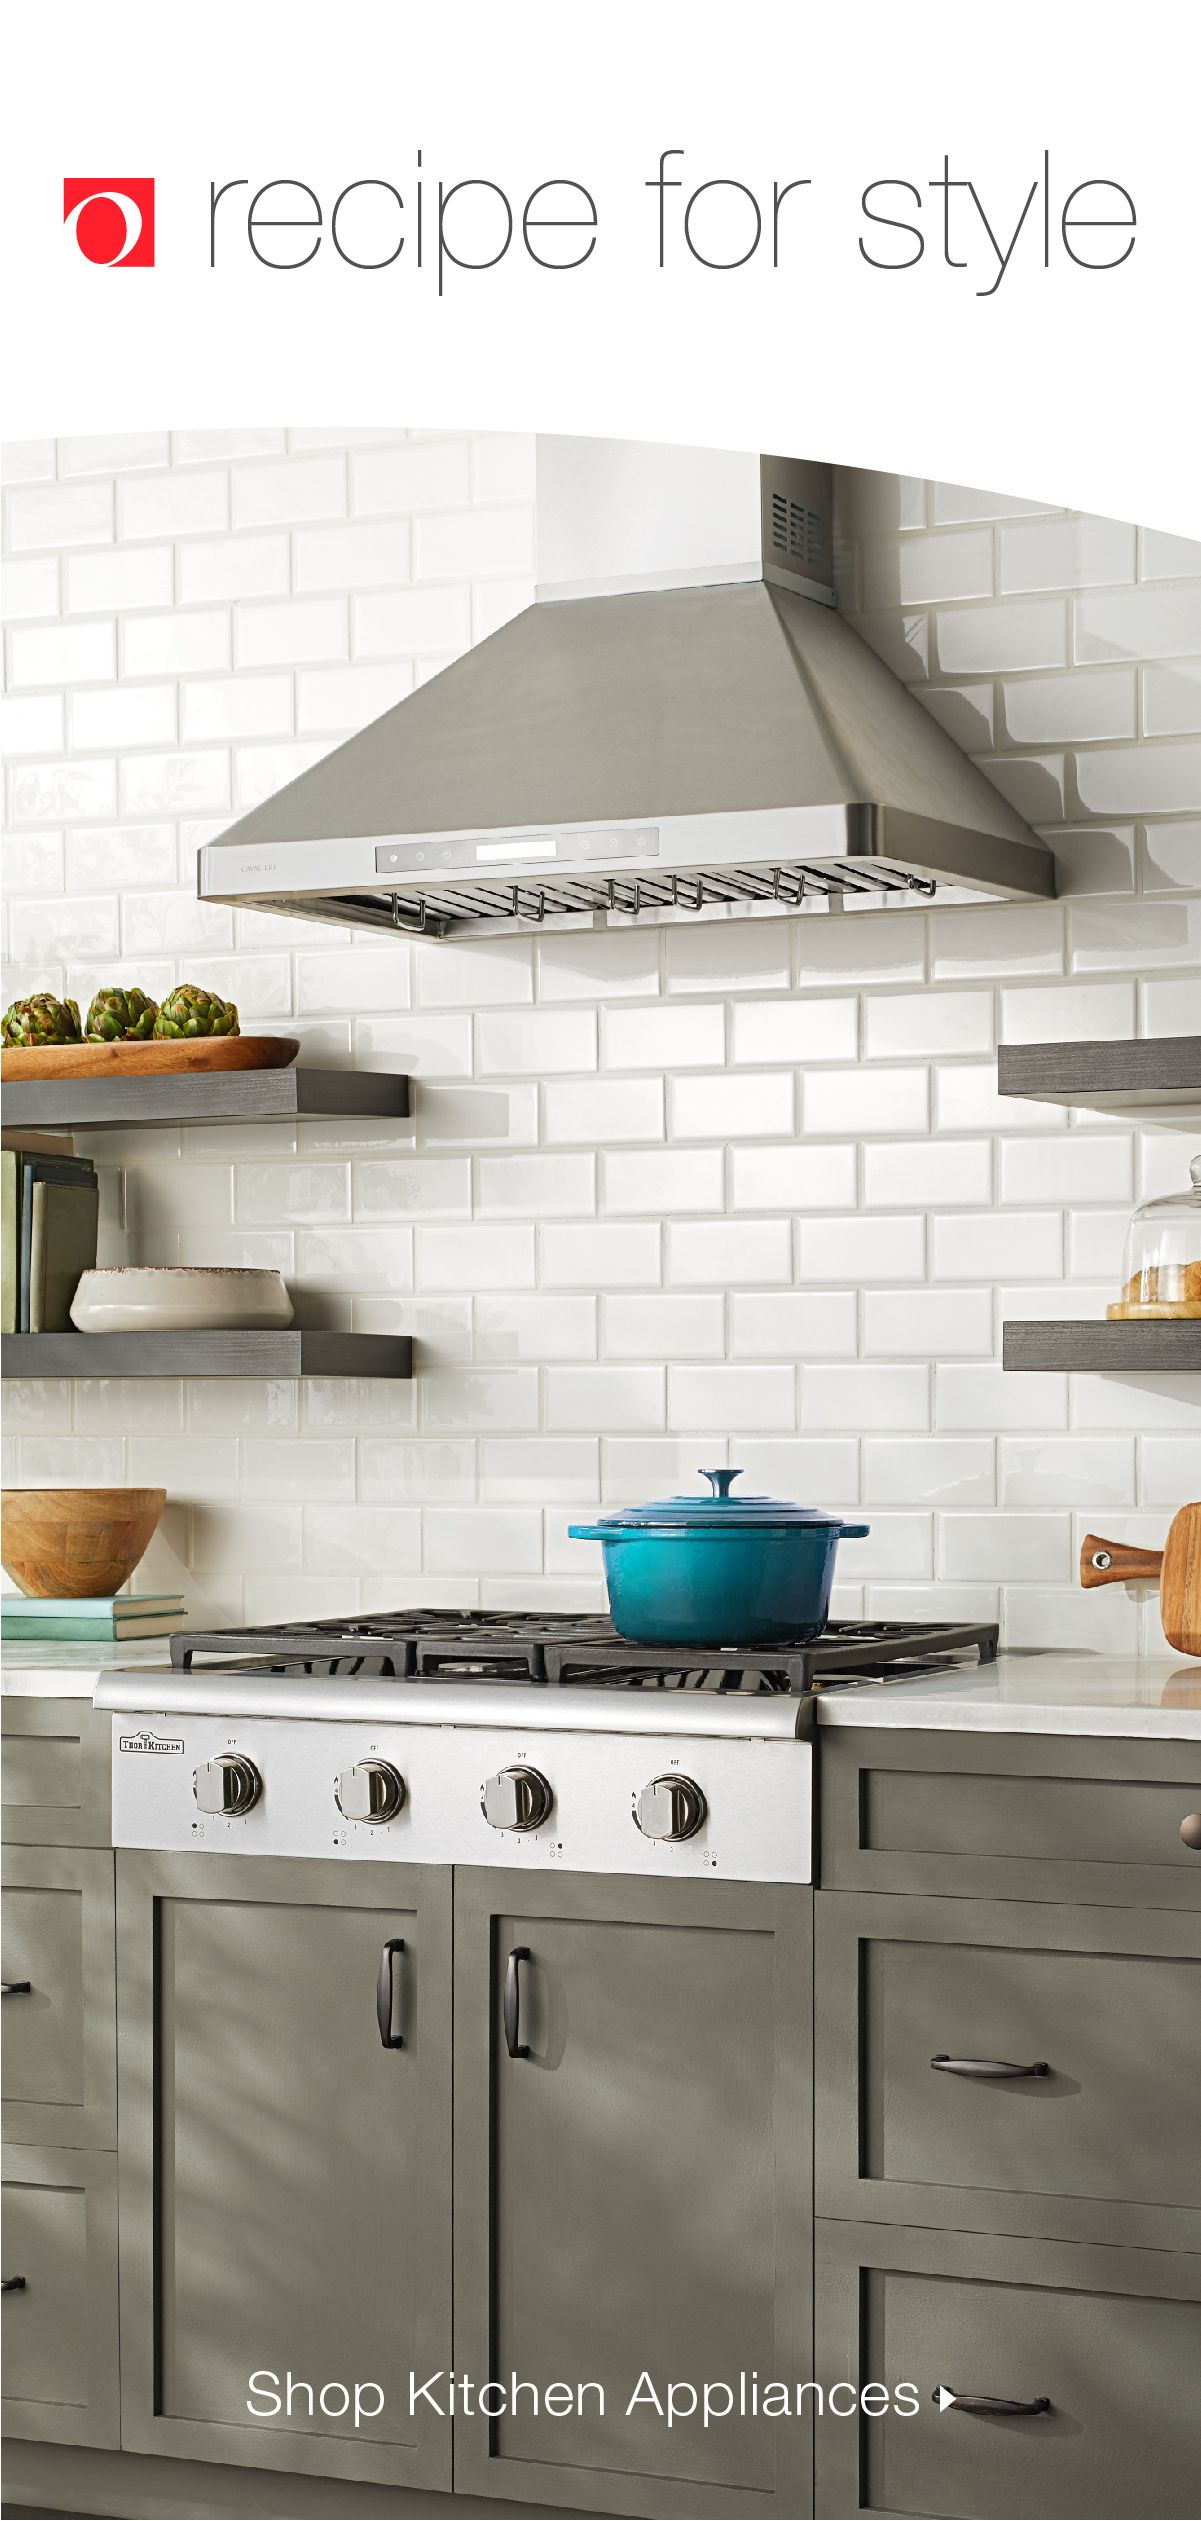 Cook Your Meals In Style With New Appliances From Overstock With Our Huge Selection Of Kitchen Appliances You L Kitchen Style Kitchen Cabinets Modern Kitchen